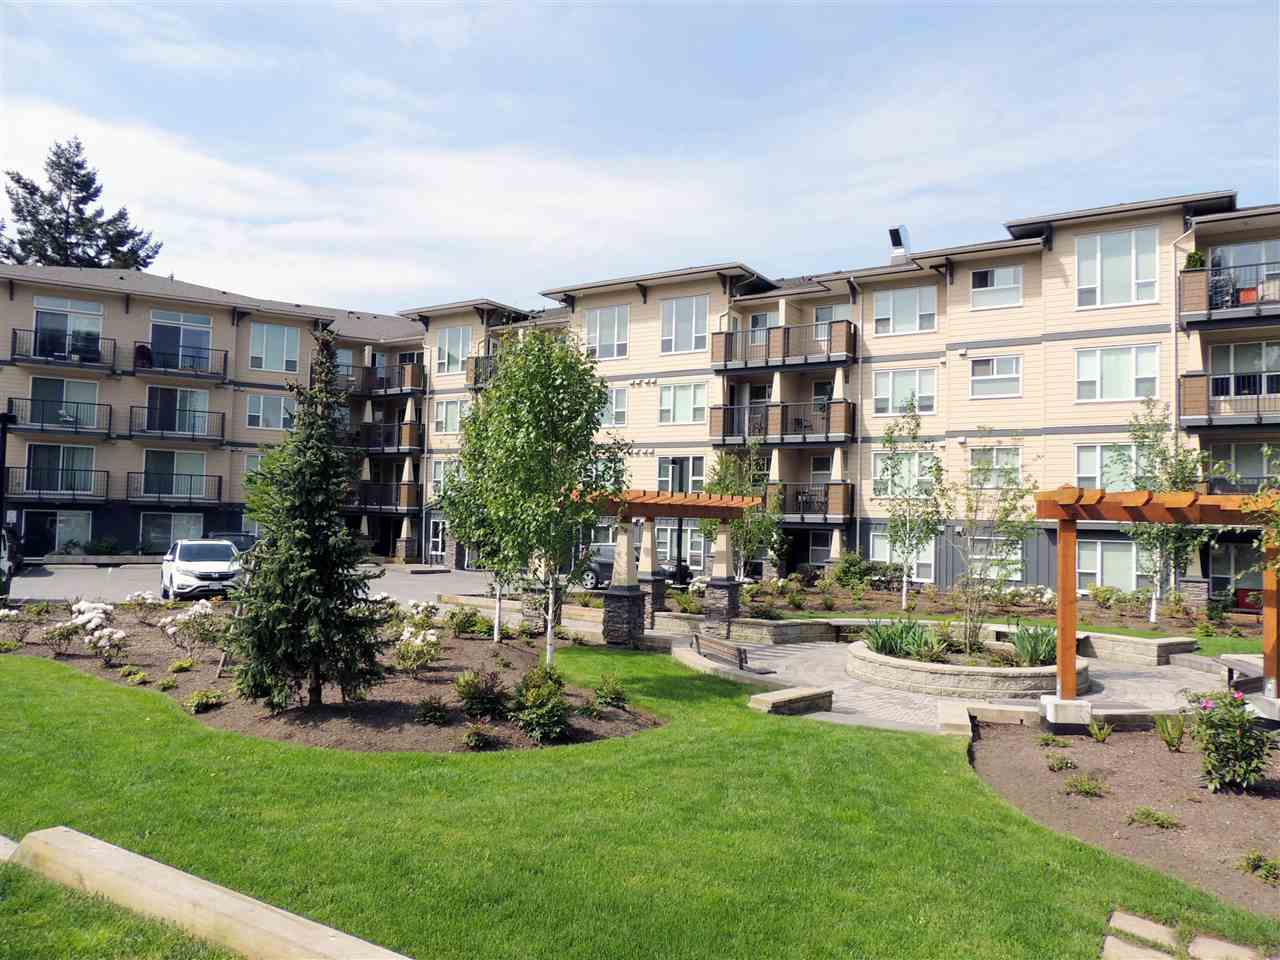 409 2565 CAMPBELL AVENUE, 1 bed, 1 bath, at $299,900